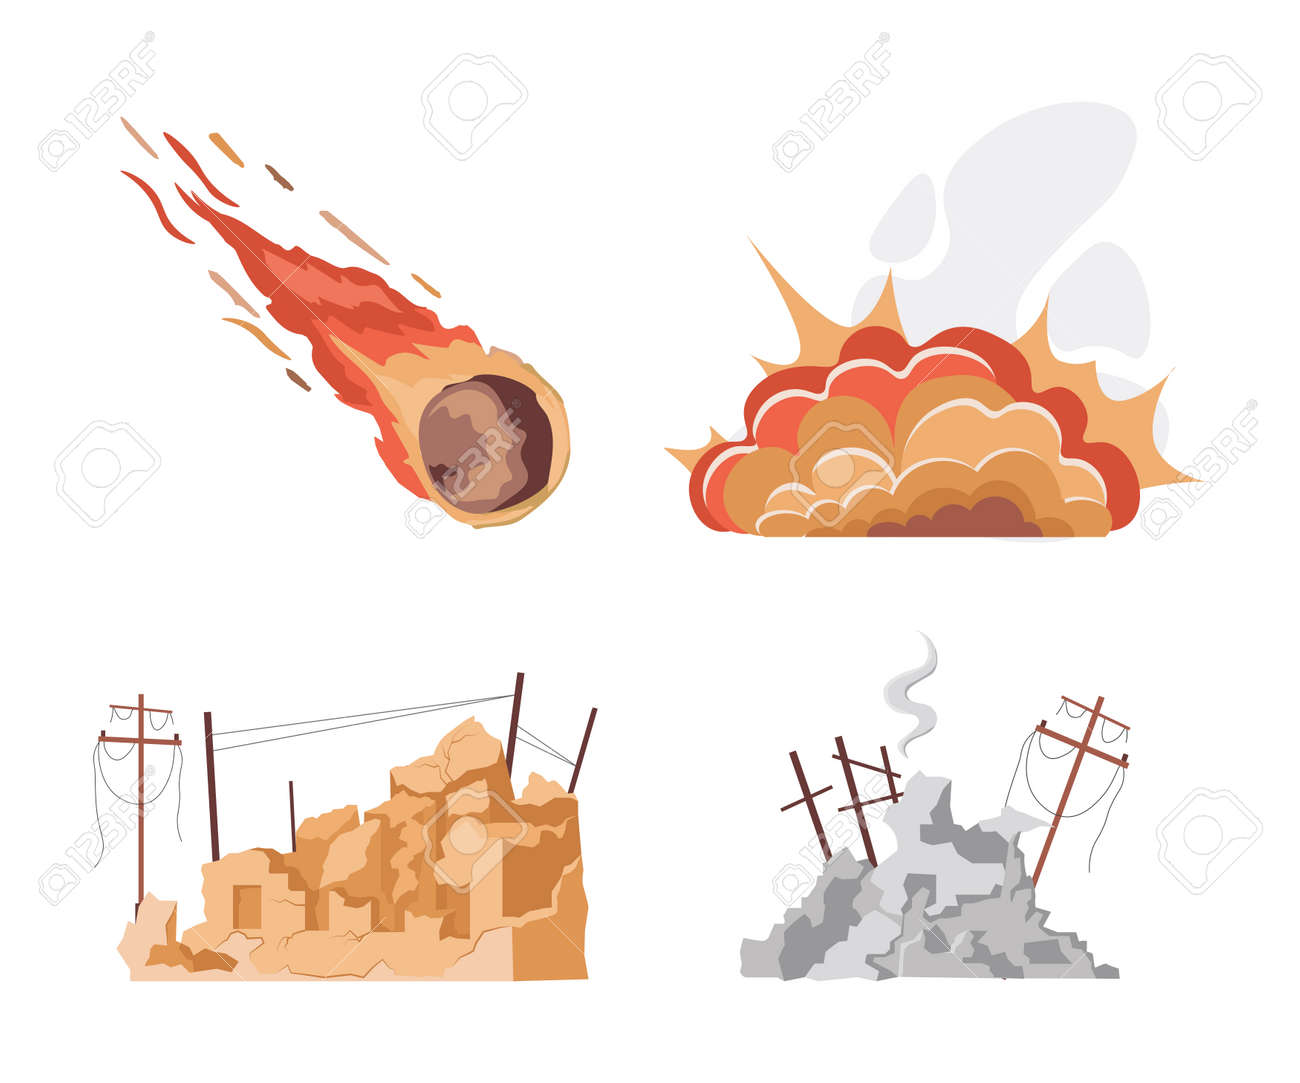 Set of natural disaster vector flat illustrations isolated on white background. World in collapse concept. - 172534803